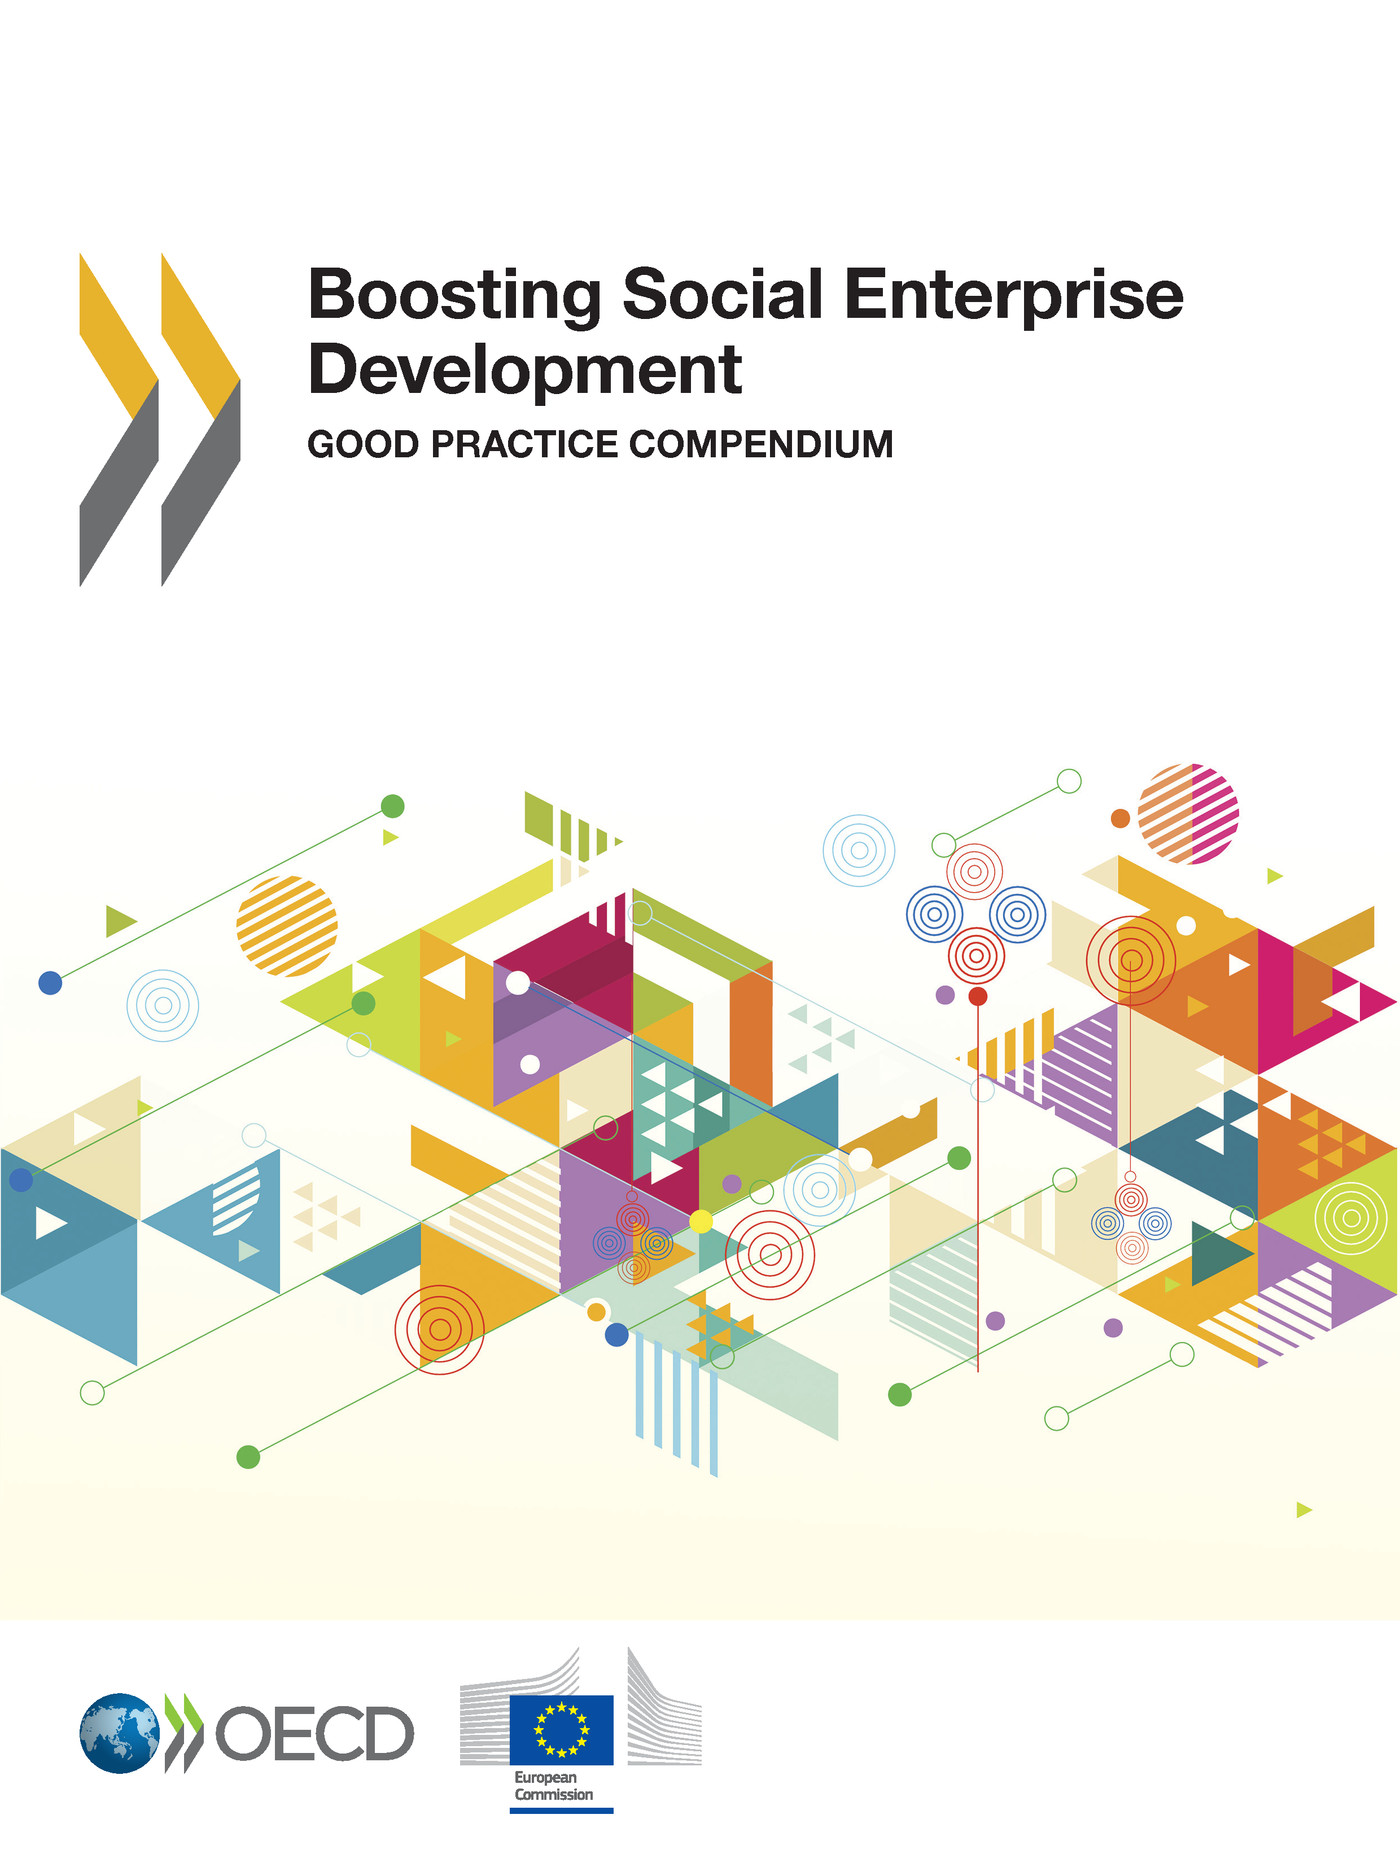 Boosting Social Enterprise Development De  Collectif - OCDE / OECD